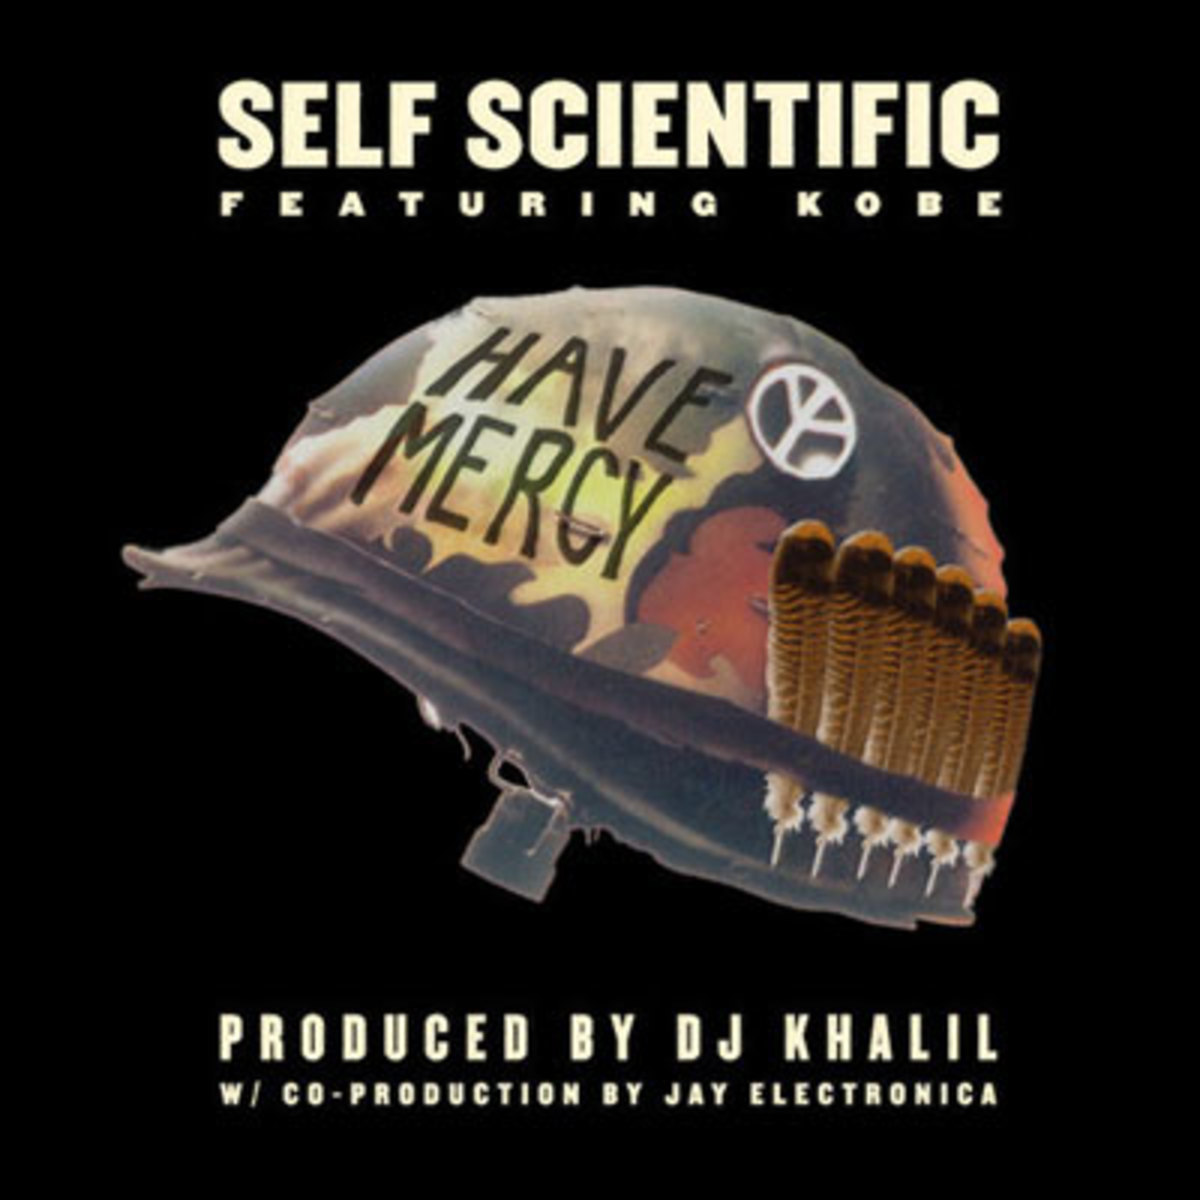 selfscientific-havemercy.jpg